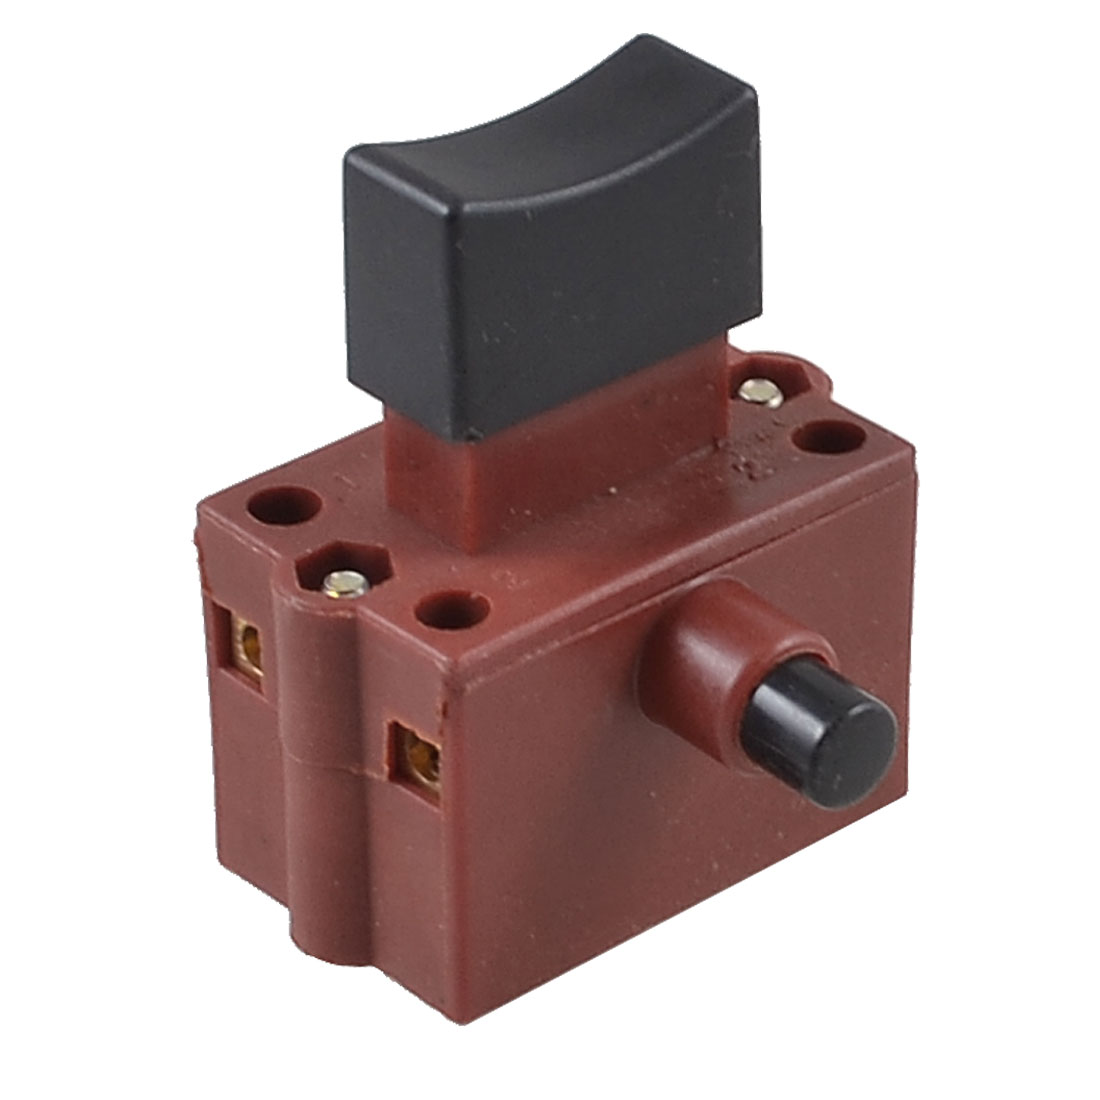 AC 250V 10A 125V 20A DPDT Lock On Electric Tool Trigger Switch